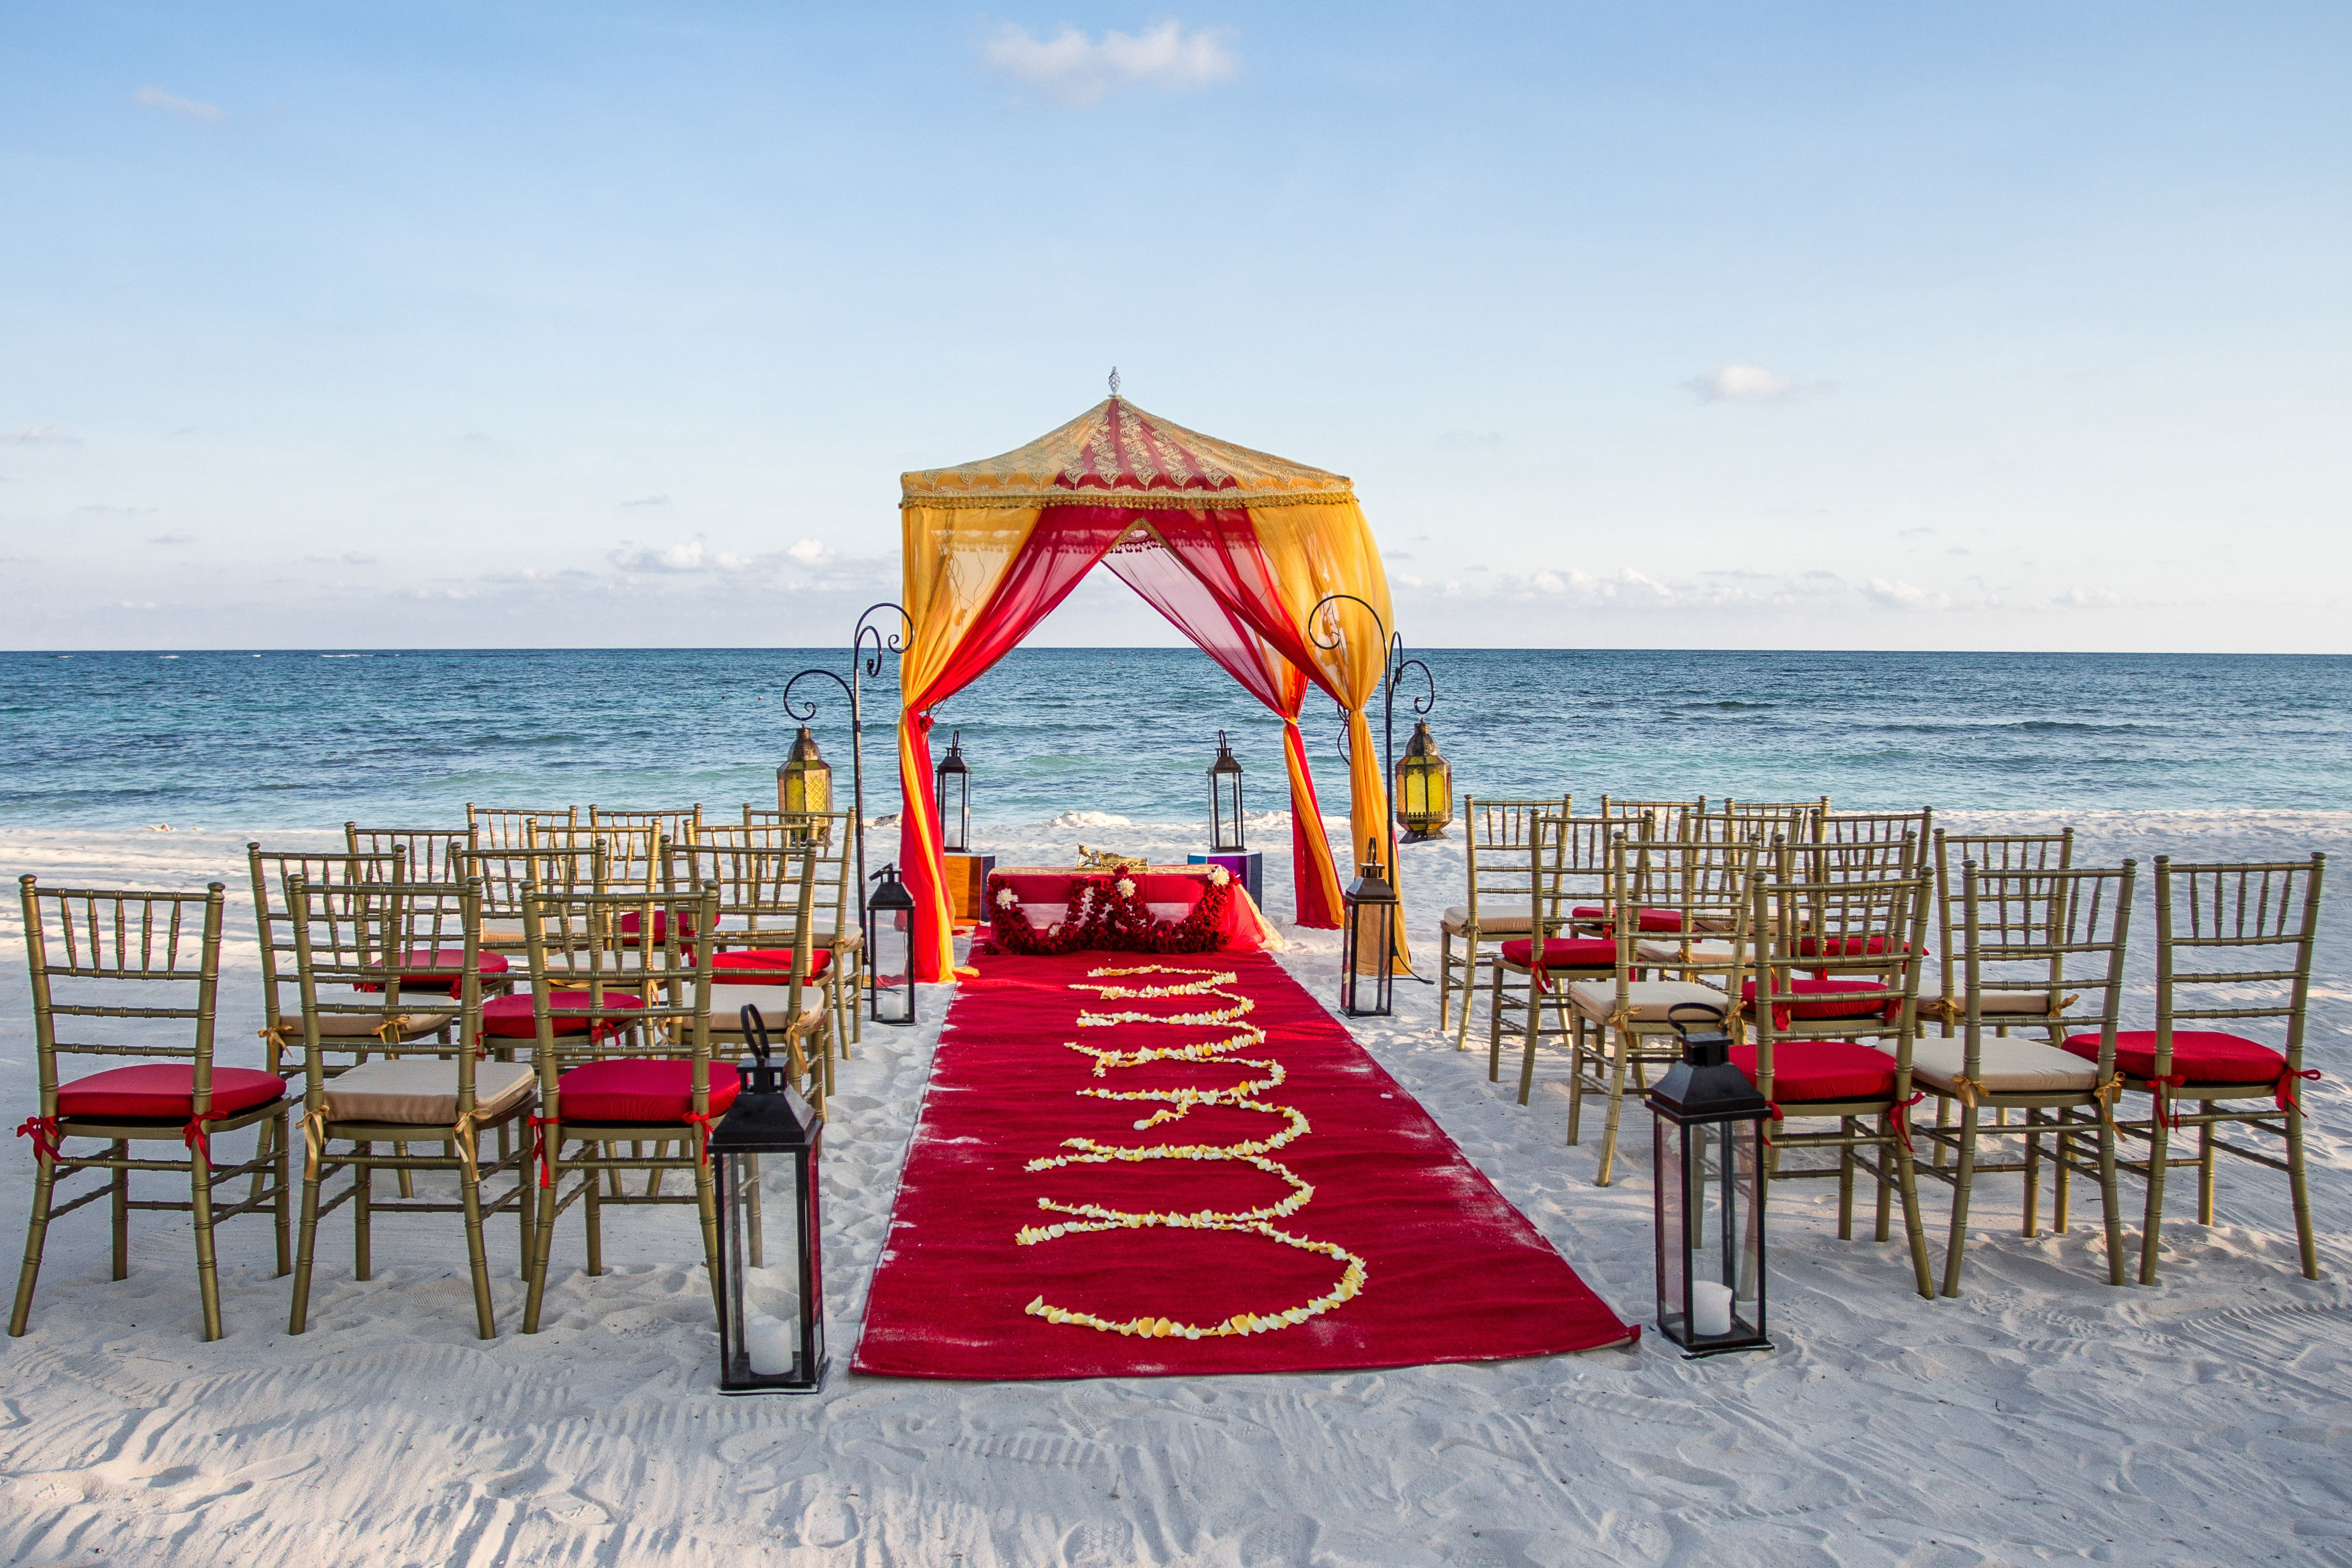 Colorful Indian Beach Wedding Setups Simple And Minimalist Design But Luxury